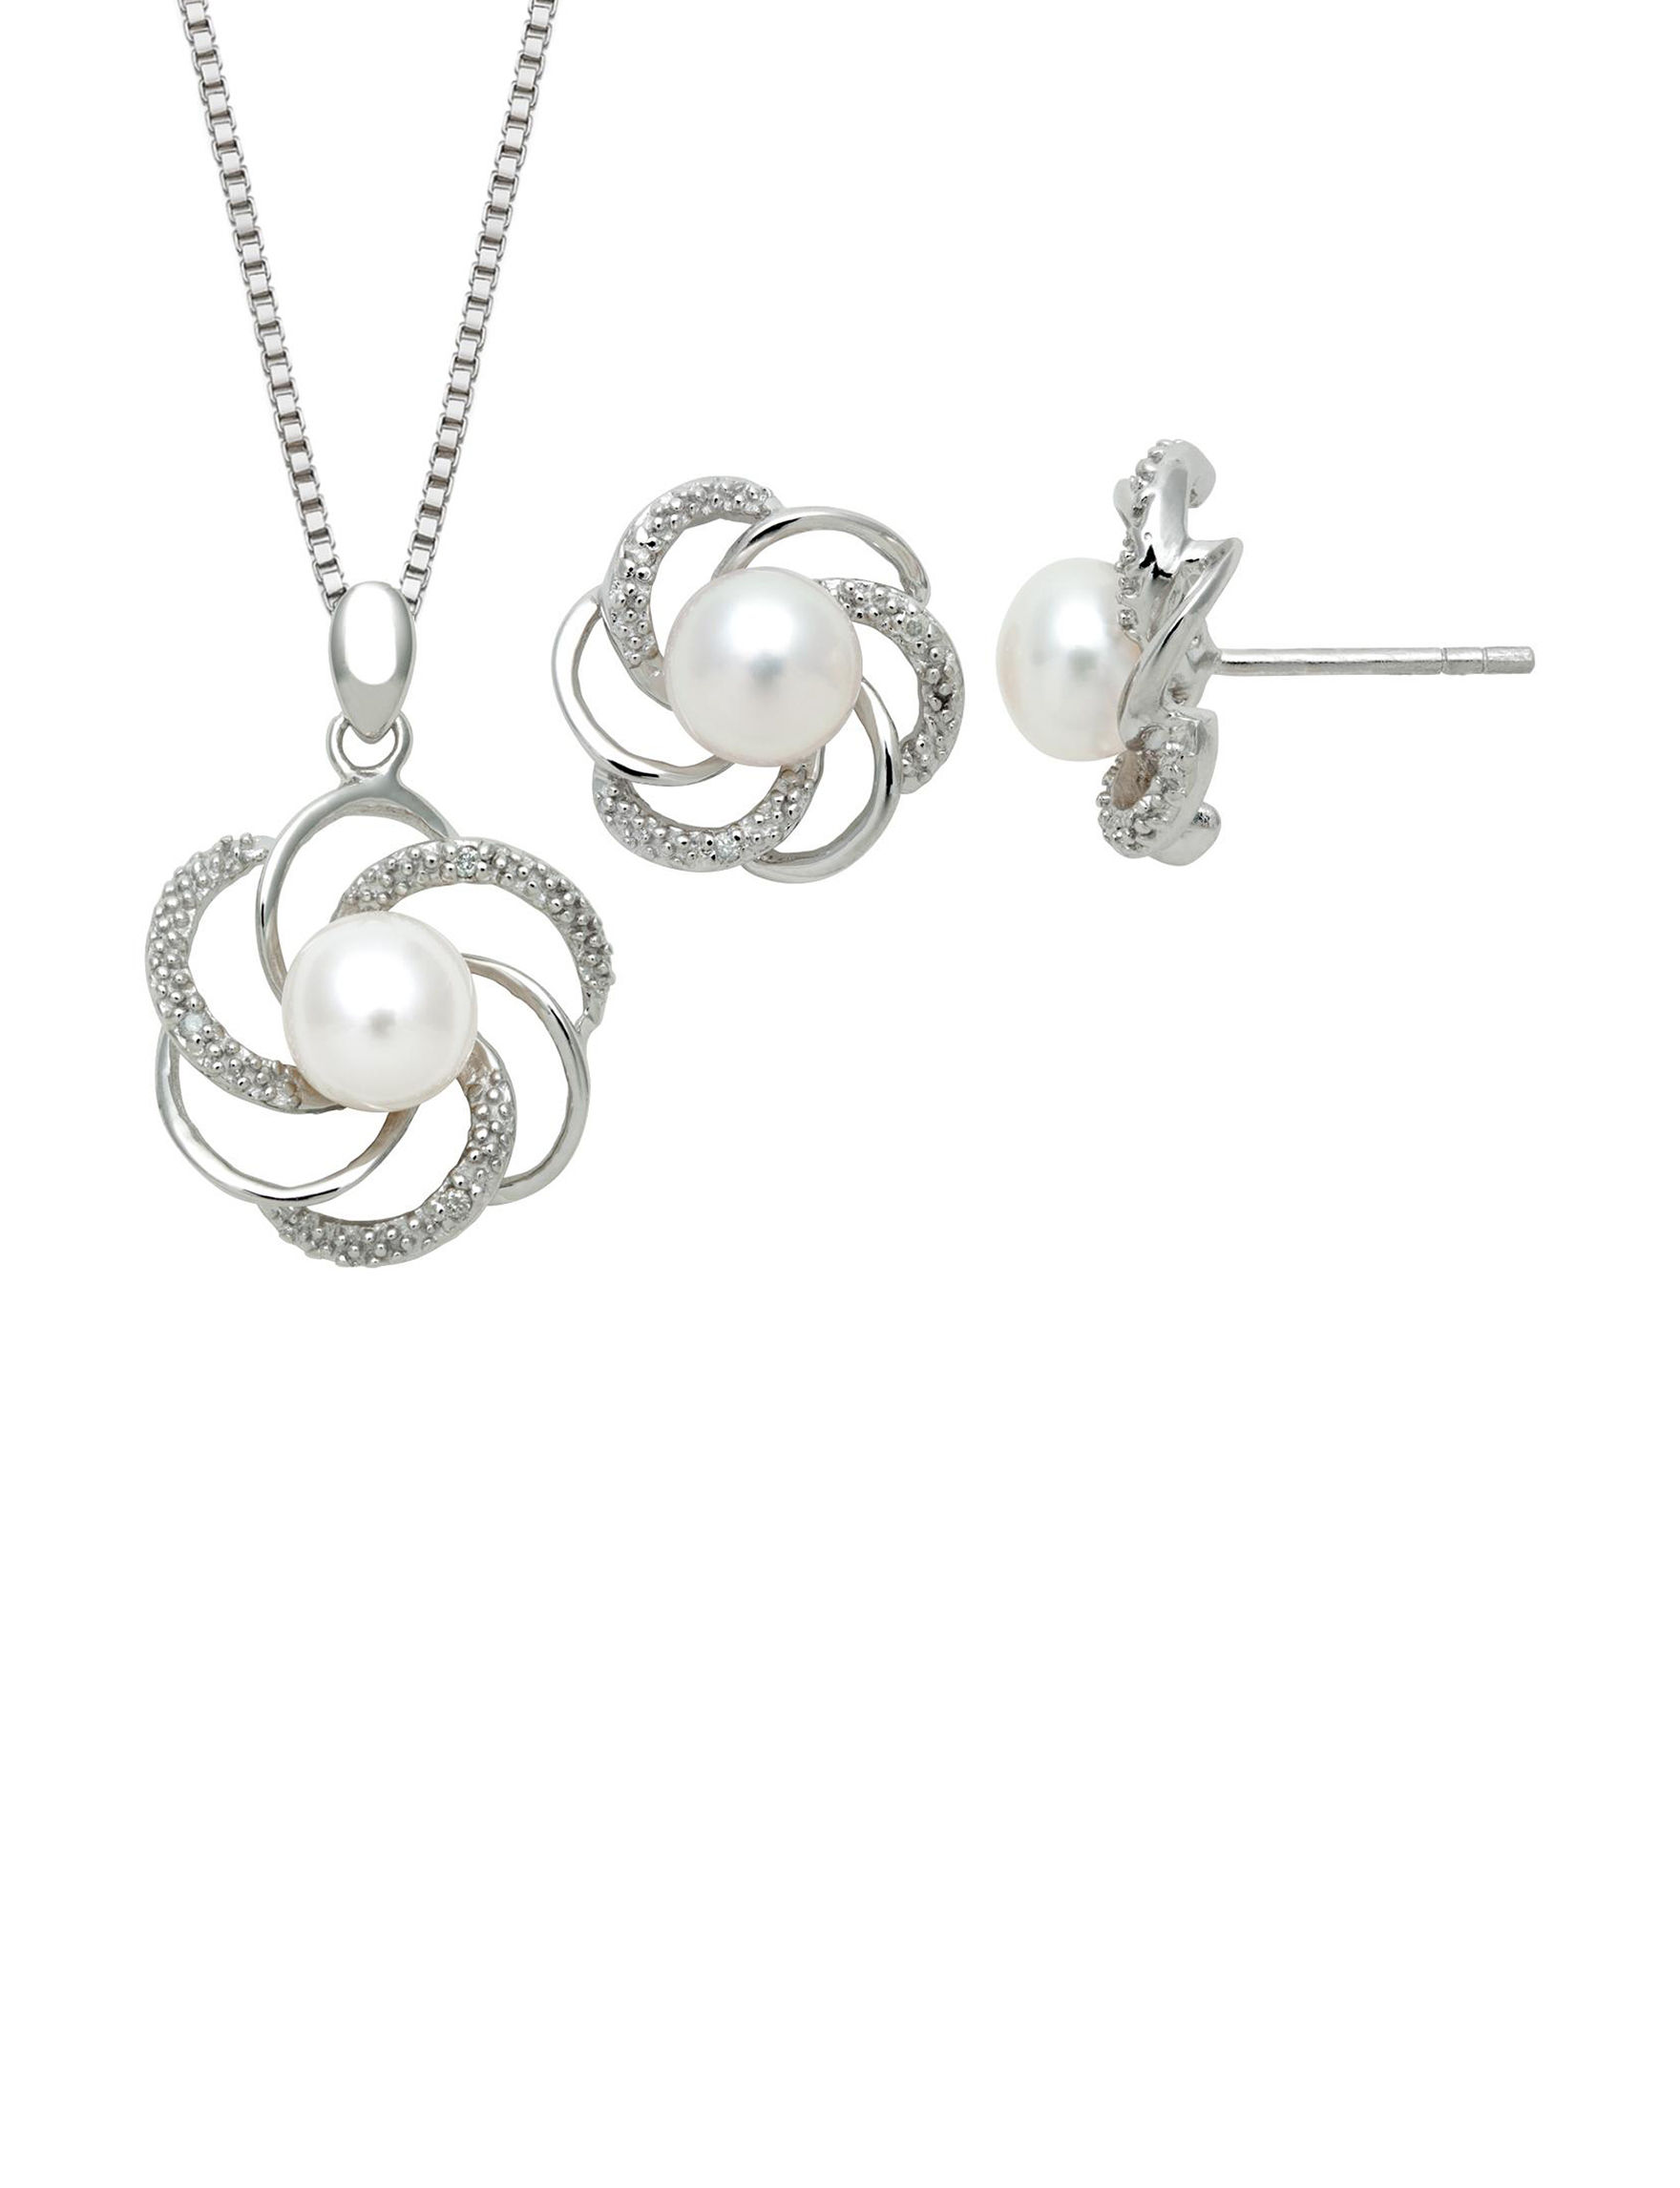 CPI White / Silver Jewelry Sets Fine Jewelry